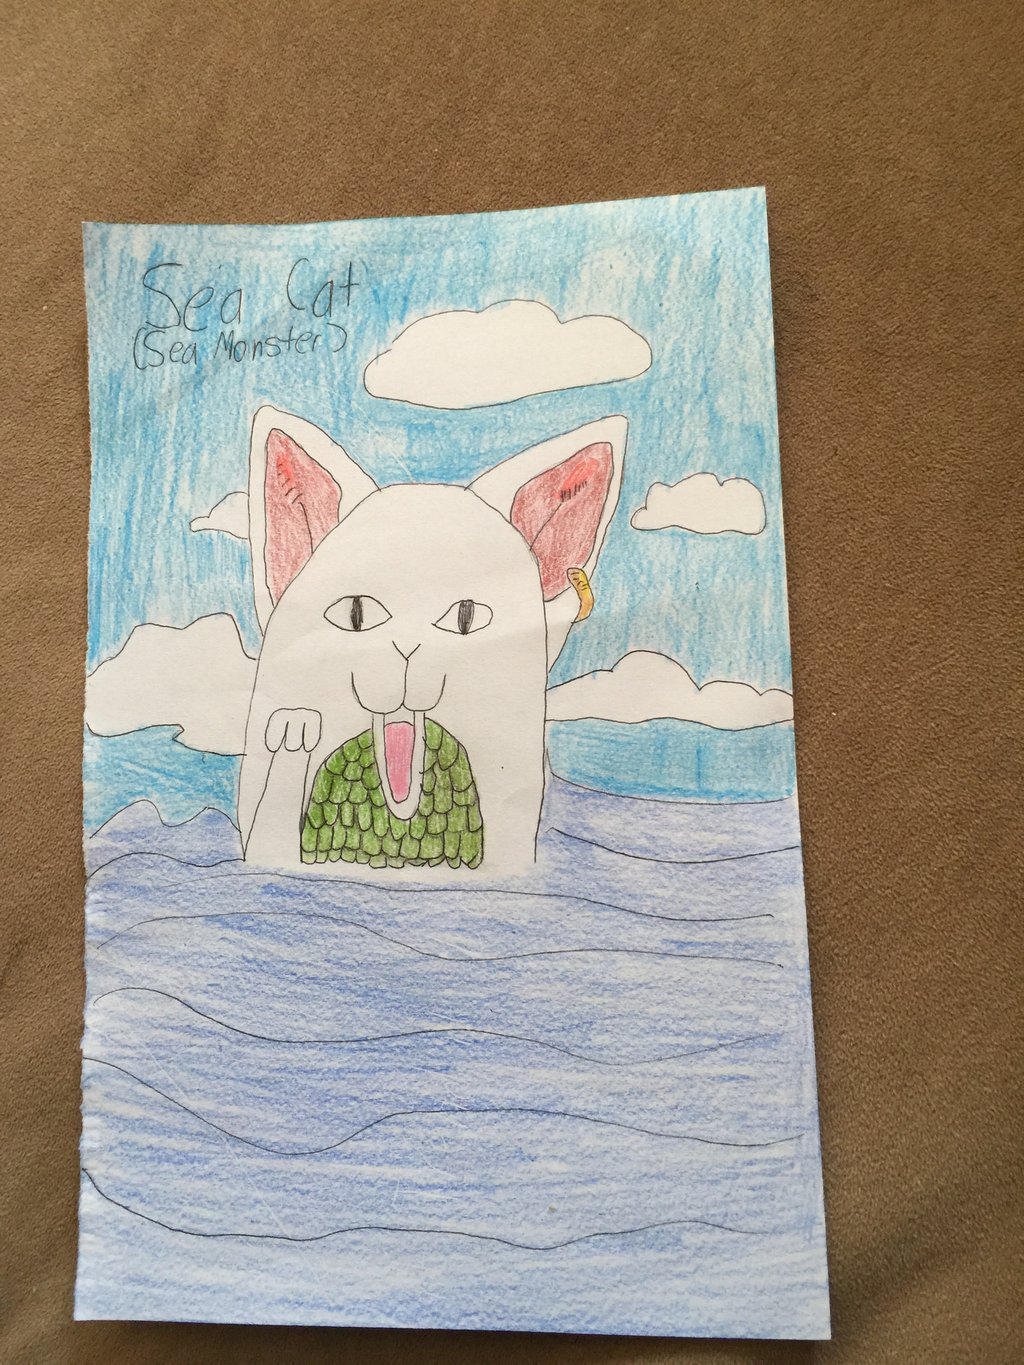 Sea Cat by ace-of-spades3220